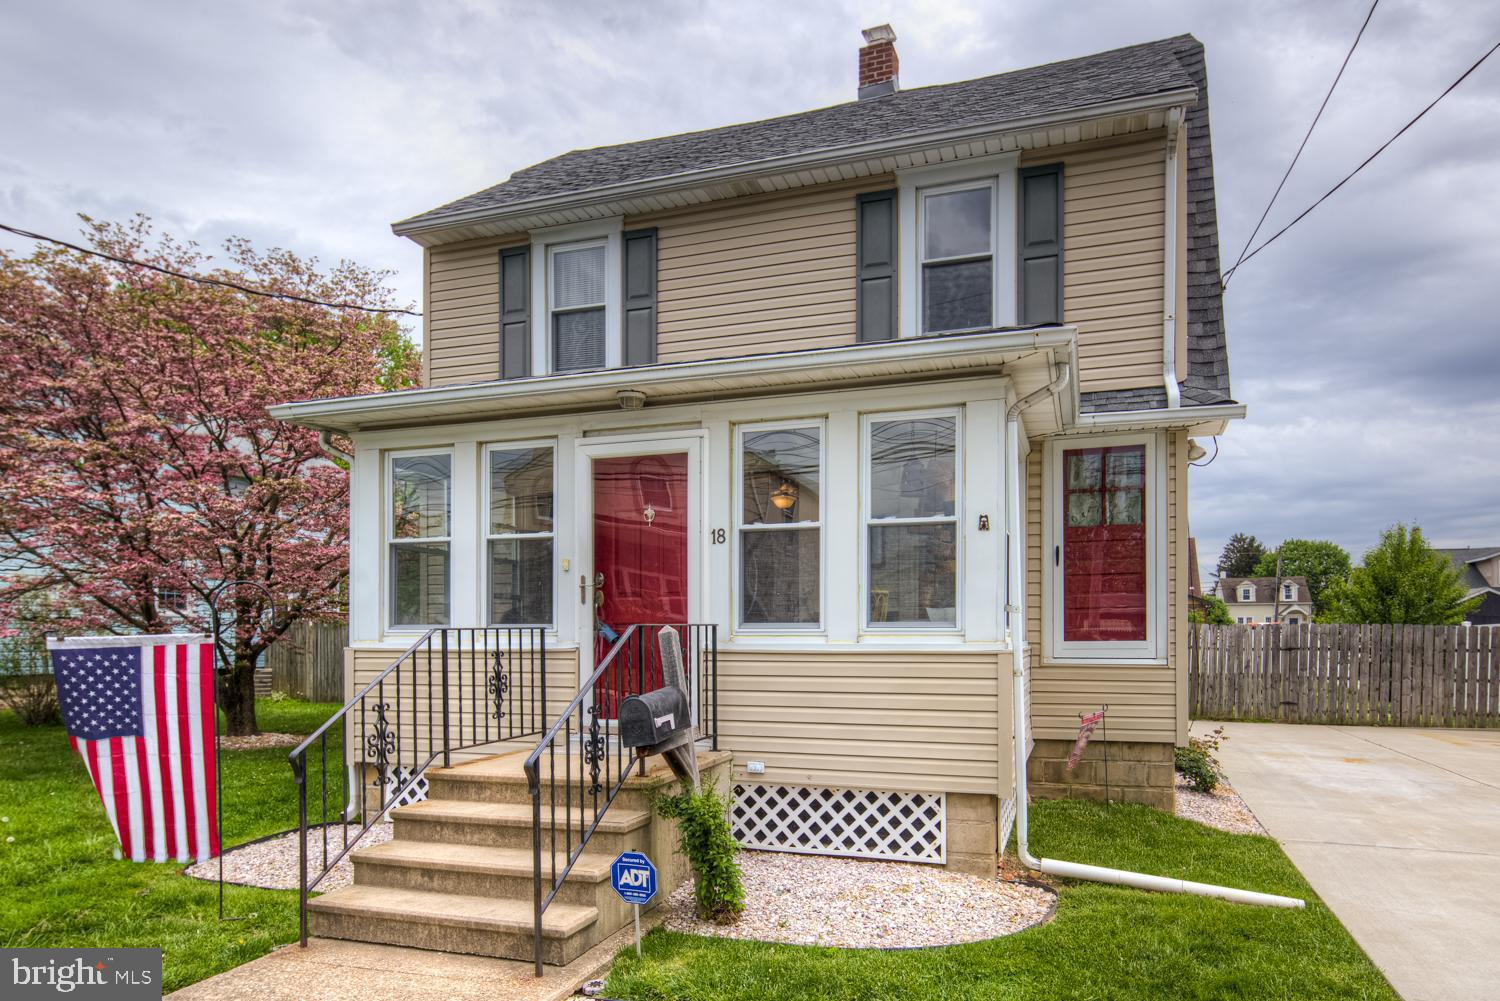 Just what you have been searching for, a charming 3 bedroom 2.5 bath home in the quiet community of